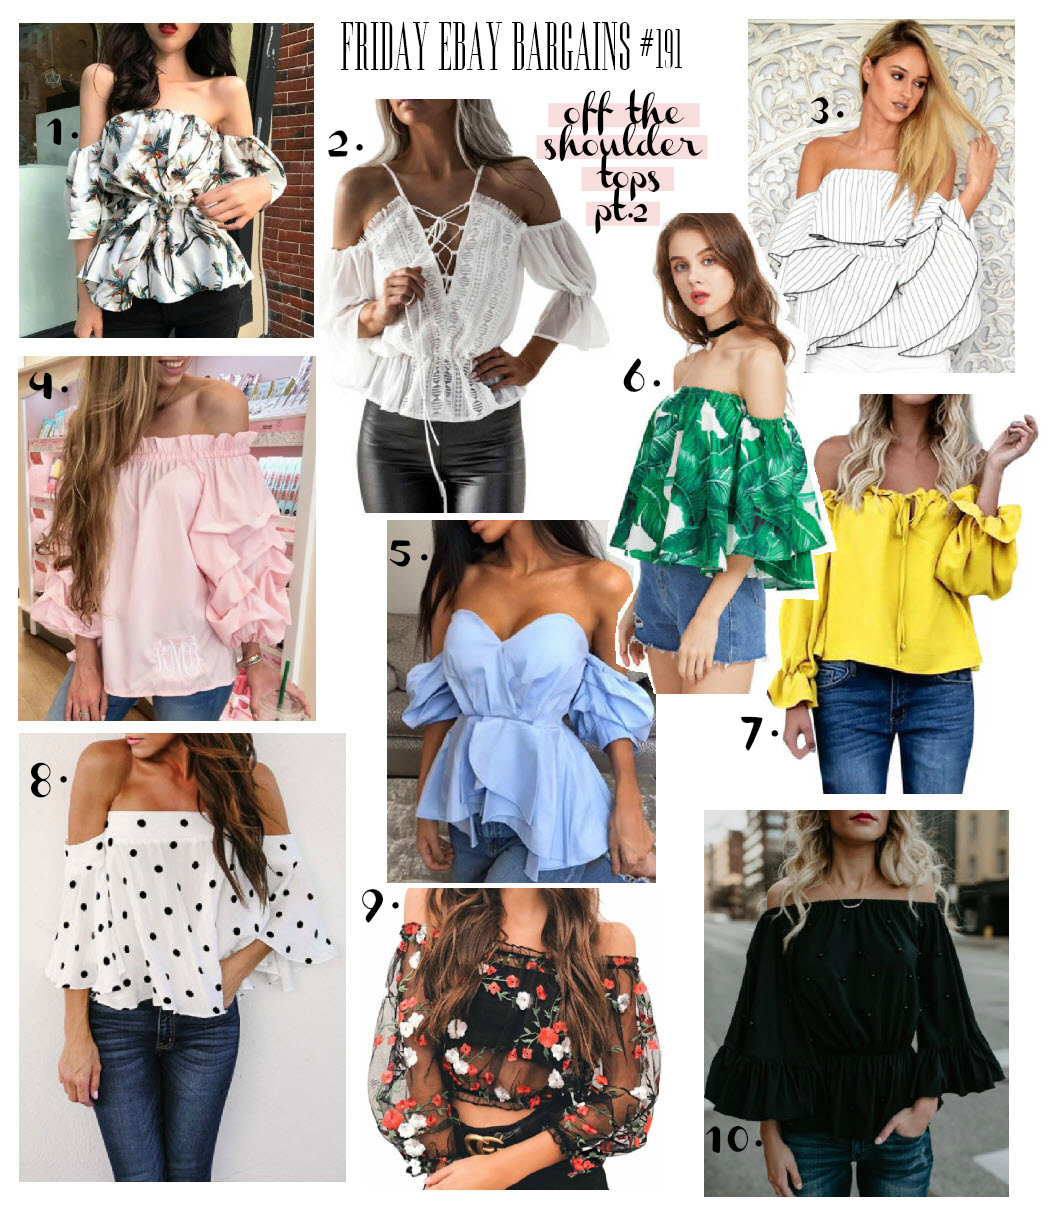 Best off shoulder tops on eBay